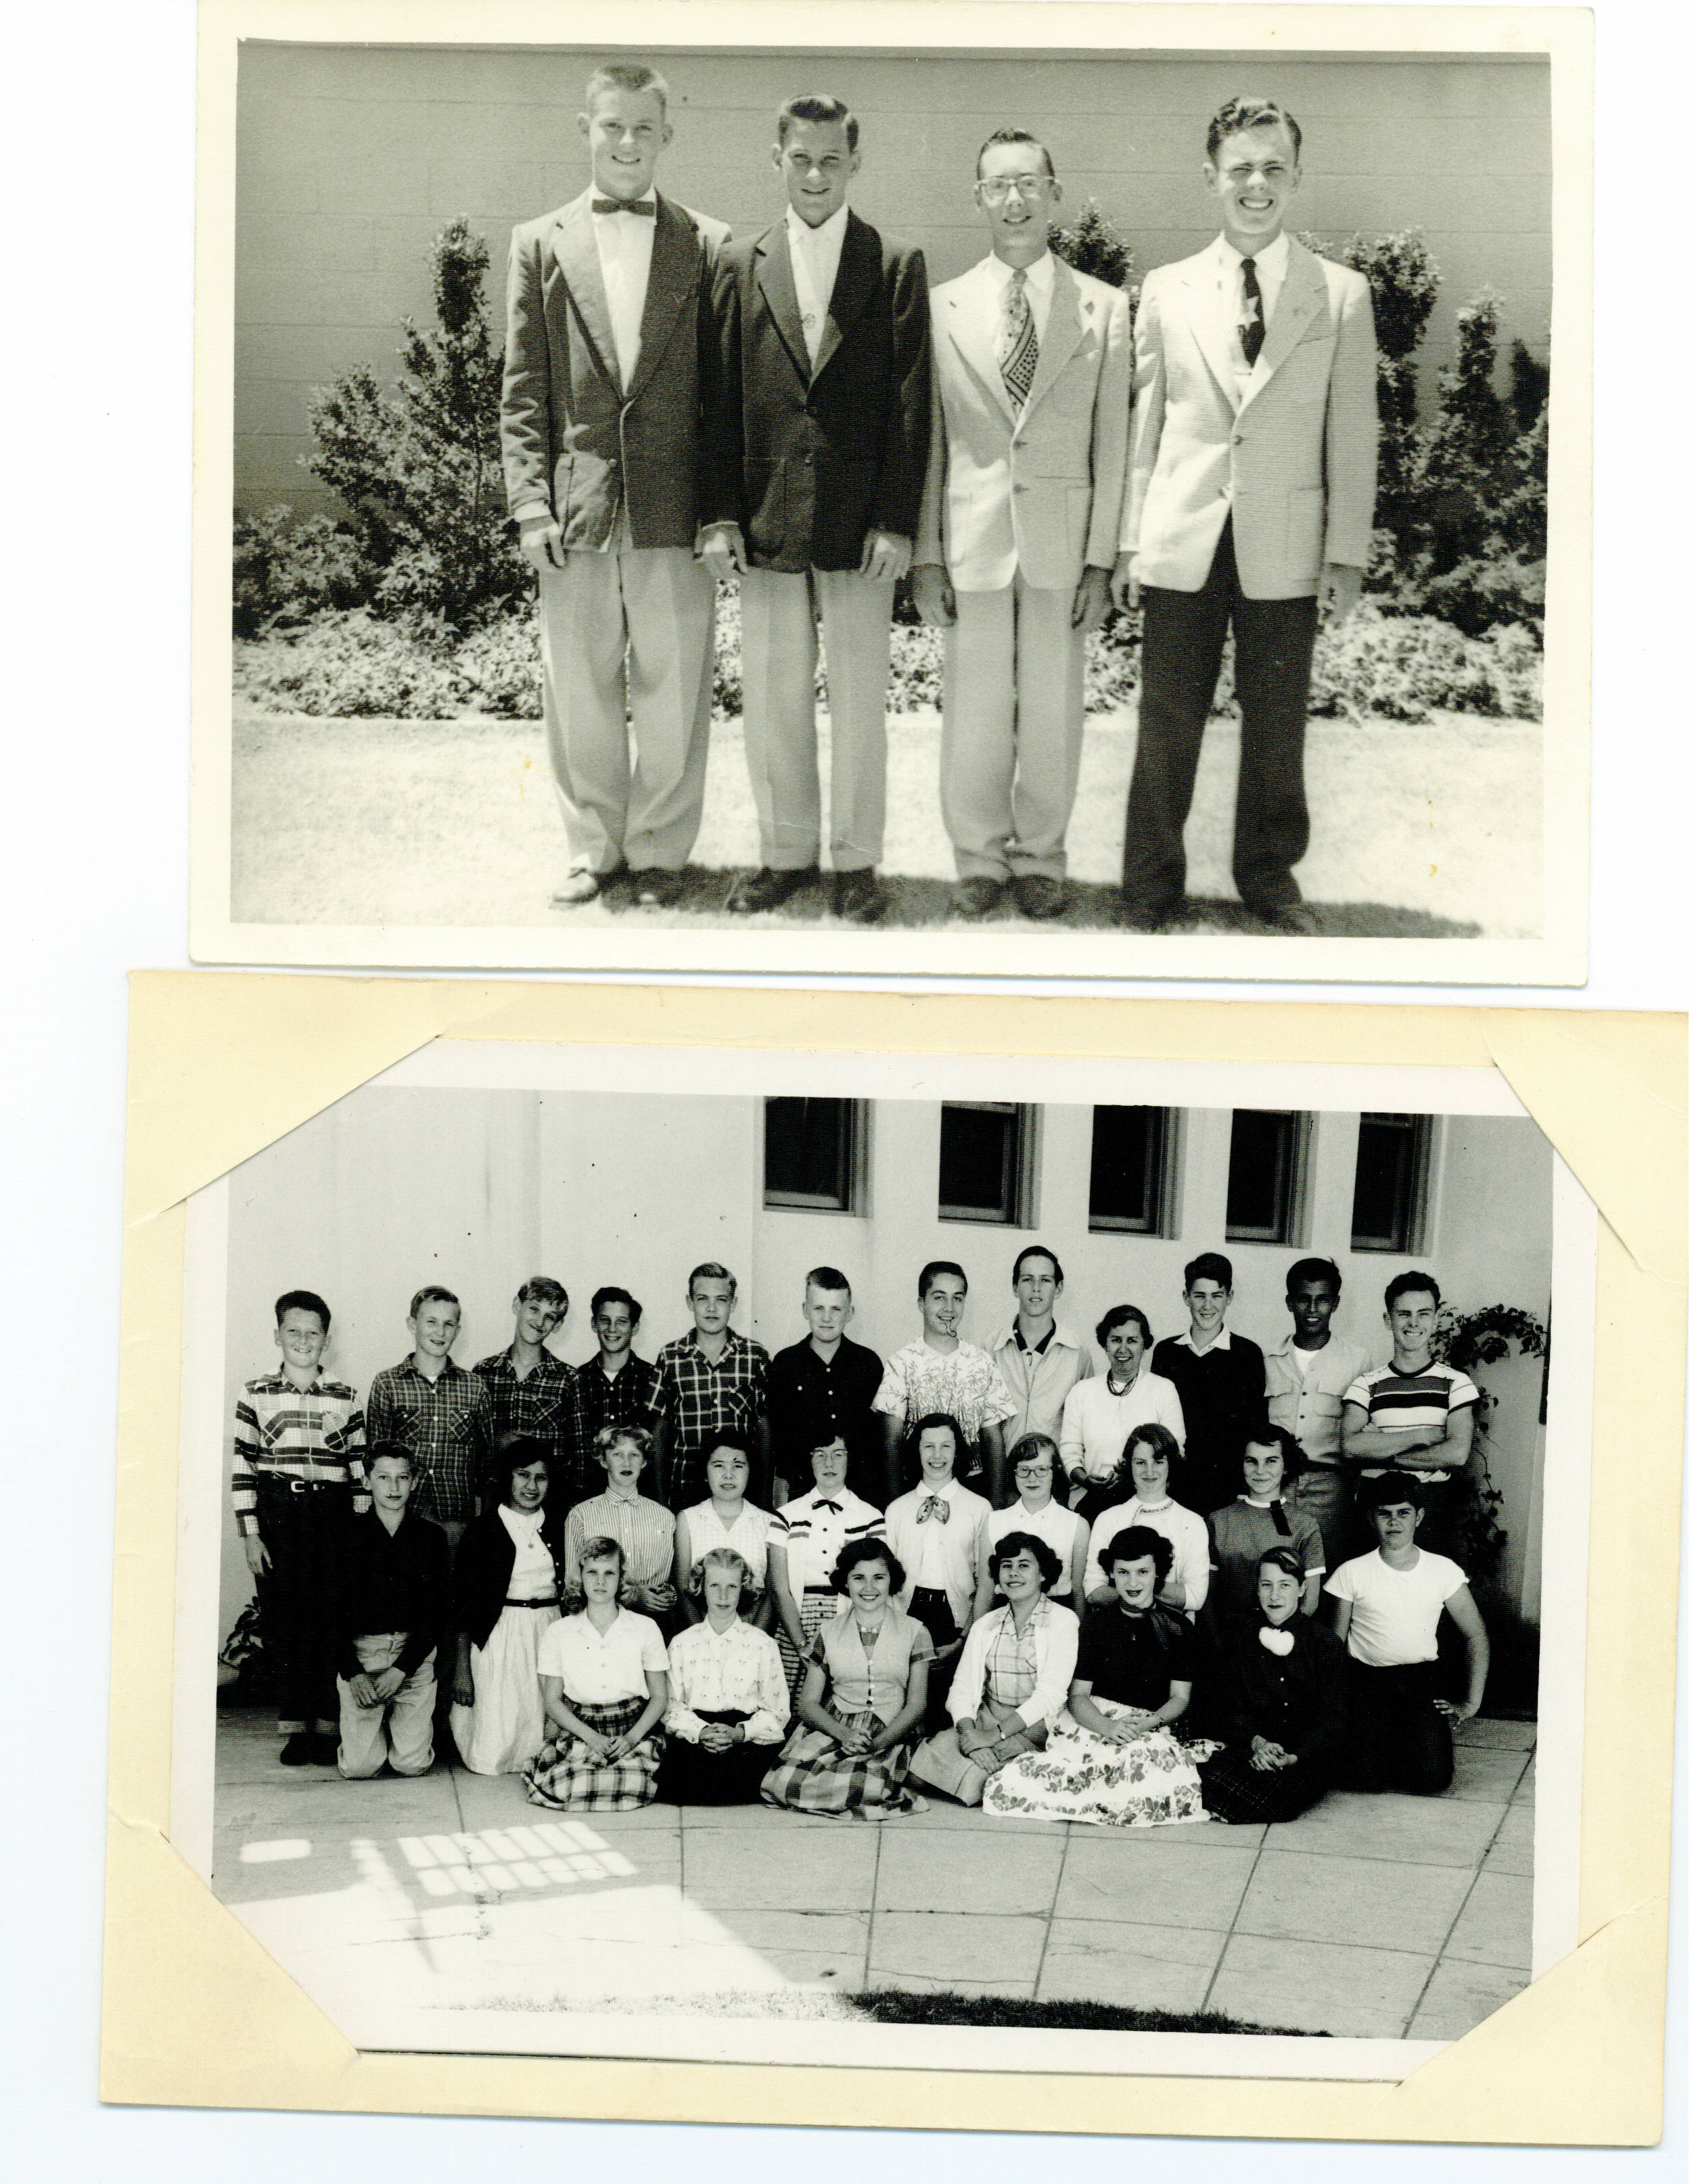 Dan Jr. High Coronado, Track team(2nd lft), and class 1953(4th lft)